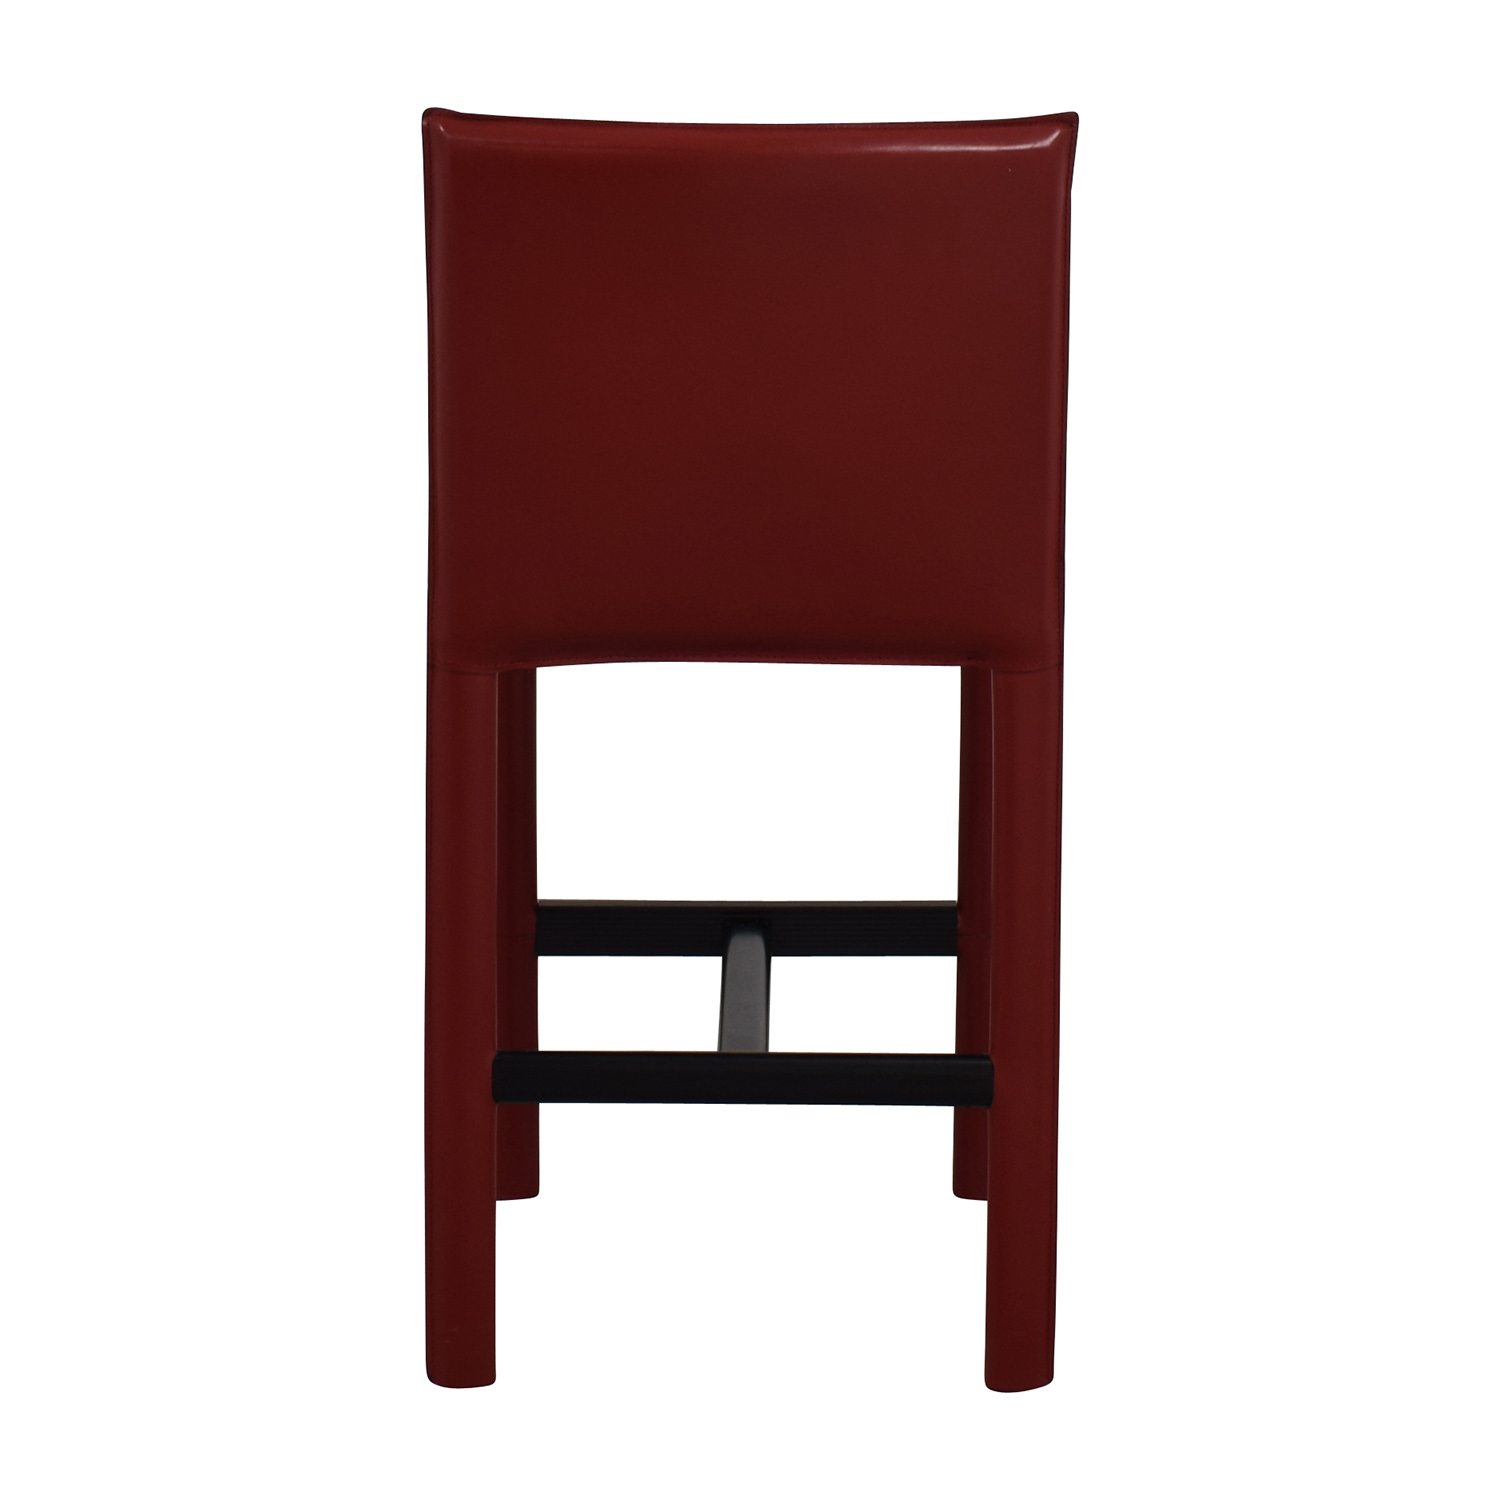 Room & Board Room & Board Sava Bar Stool in Red Leather discount